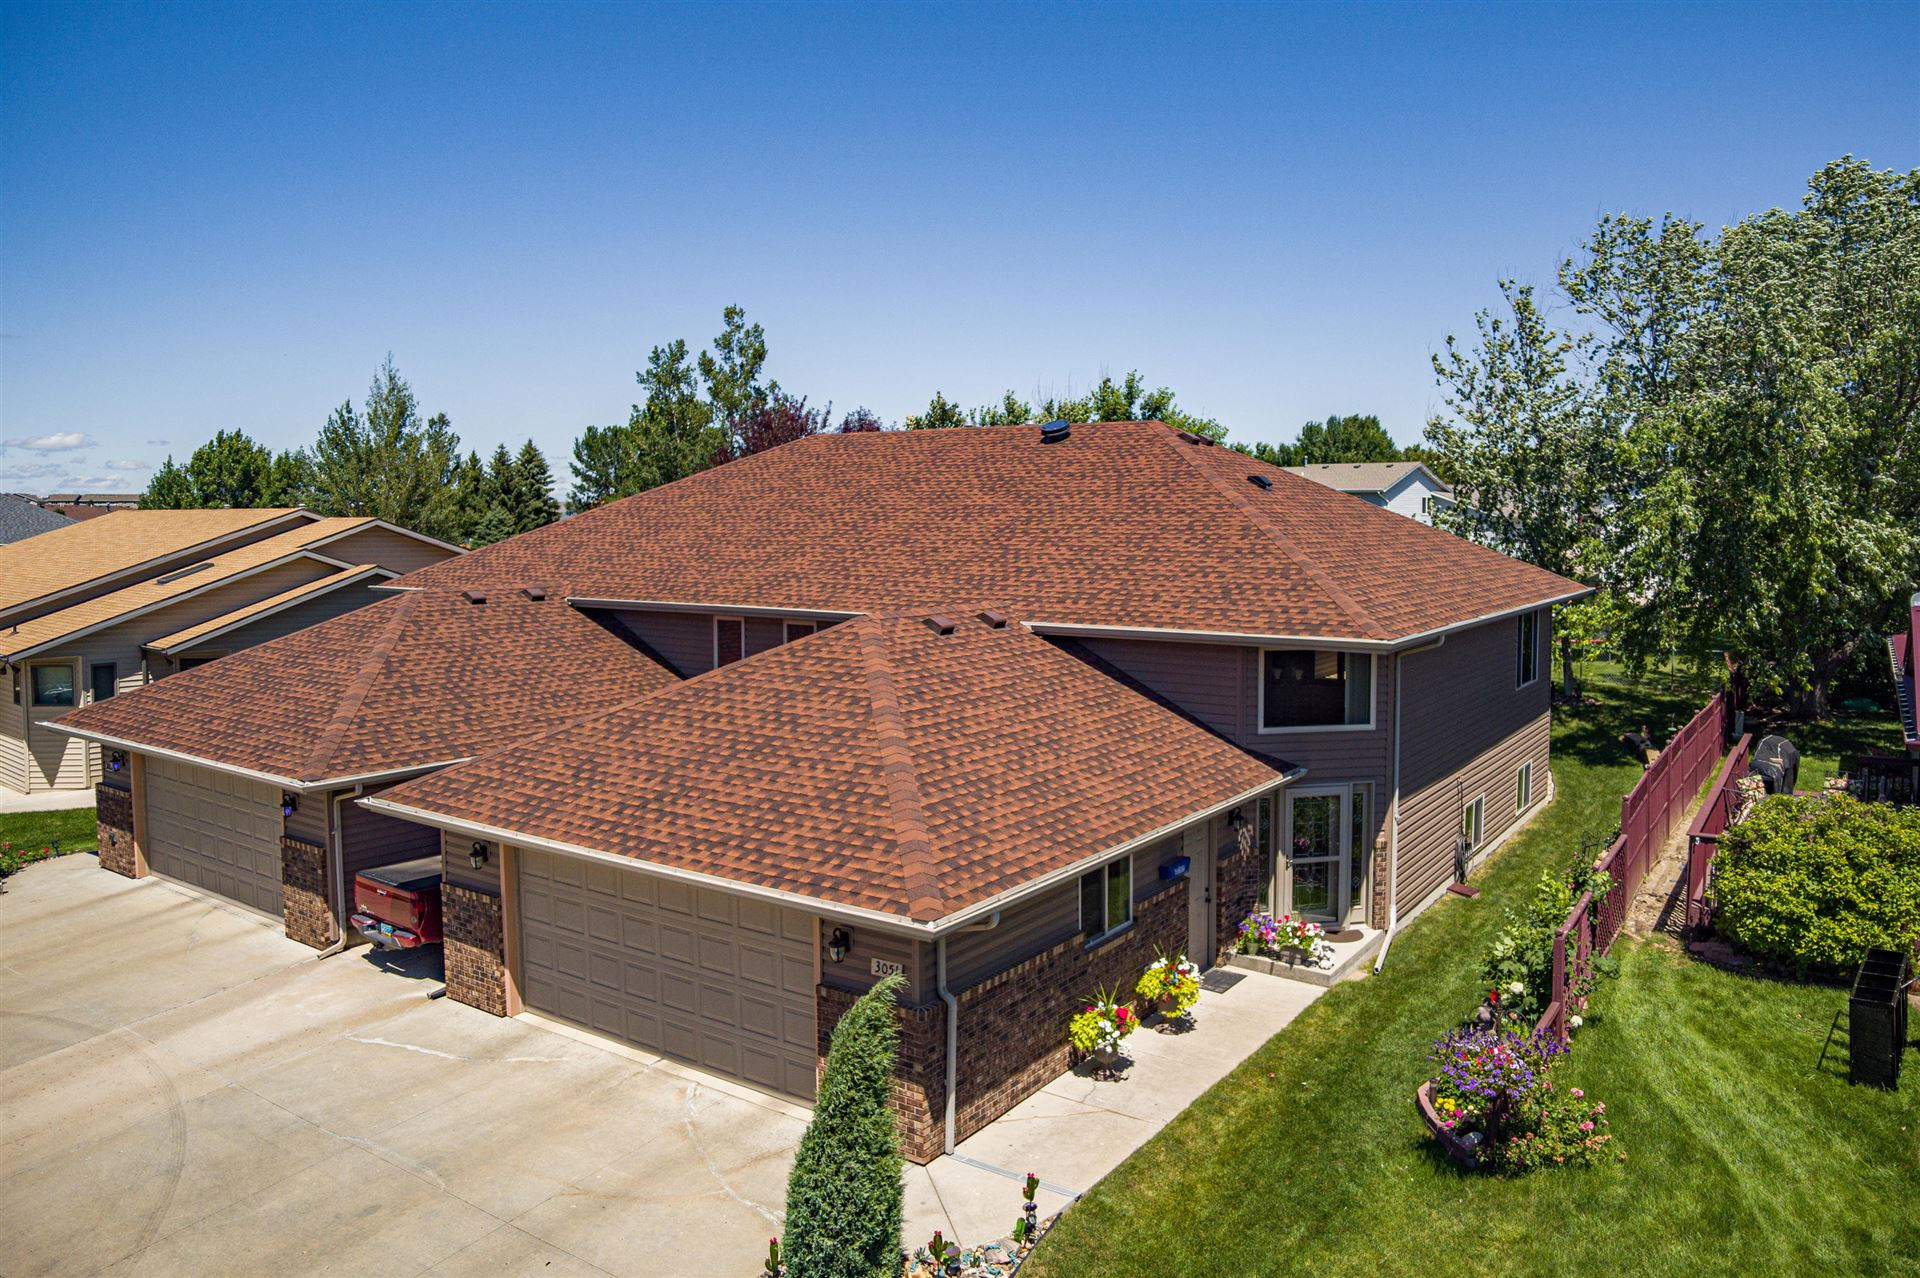 3051 N 19th Street, Bismarck, ND 58503 - #: 407592